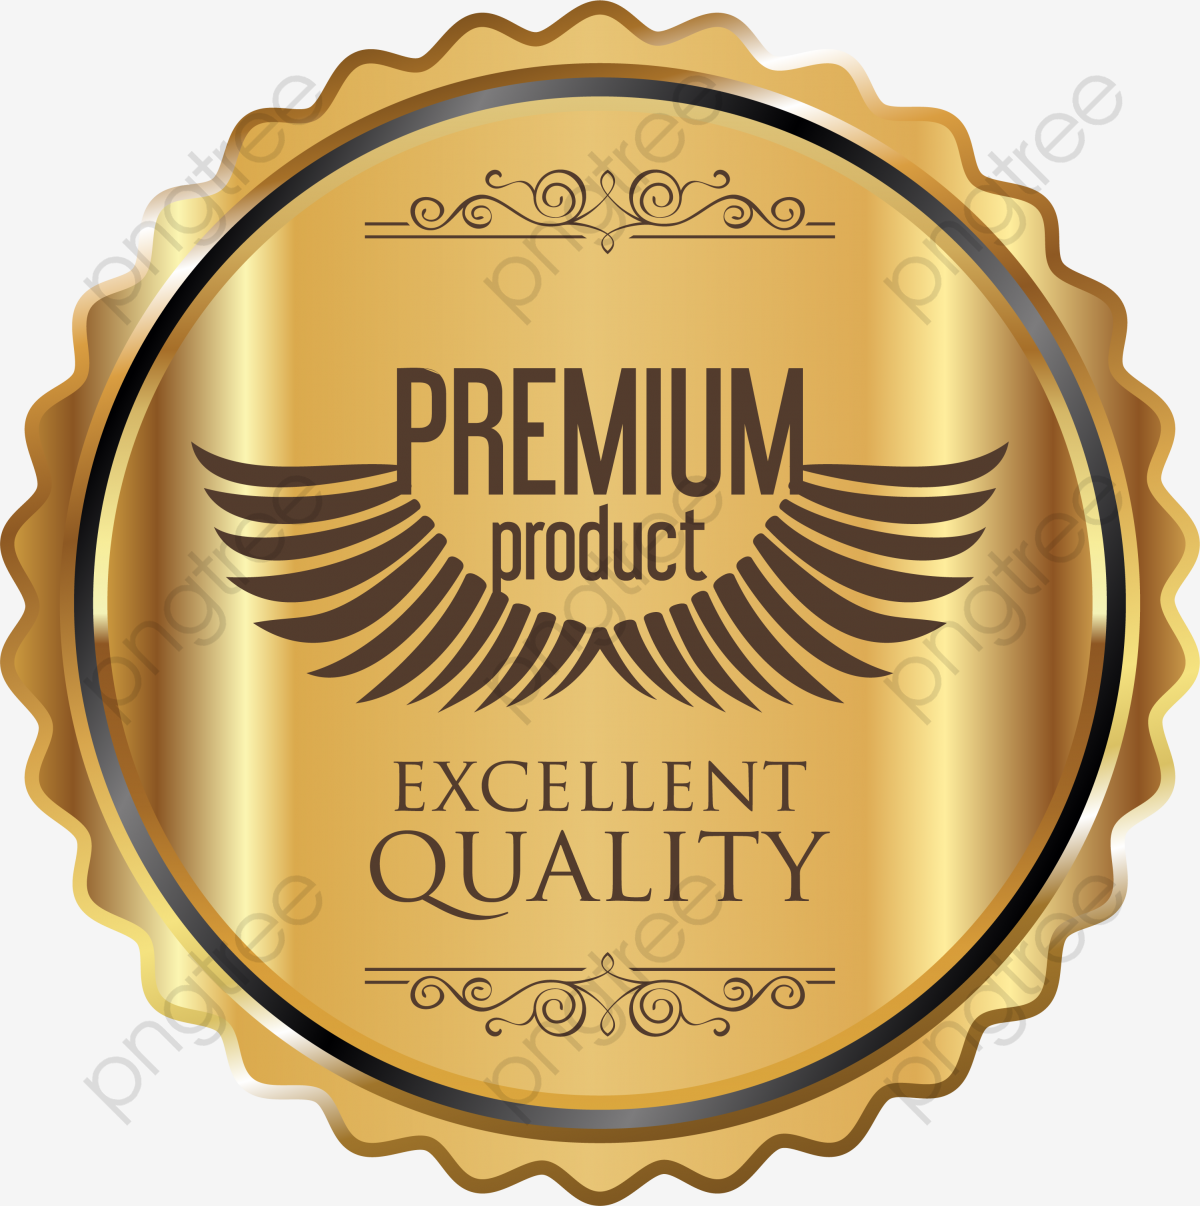 Metal Texture Quality Badge, High Quality, Product Label, Gold Badge.